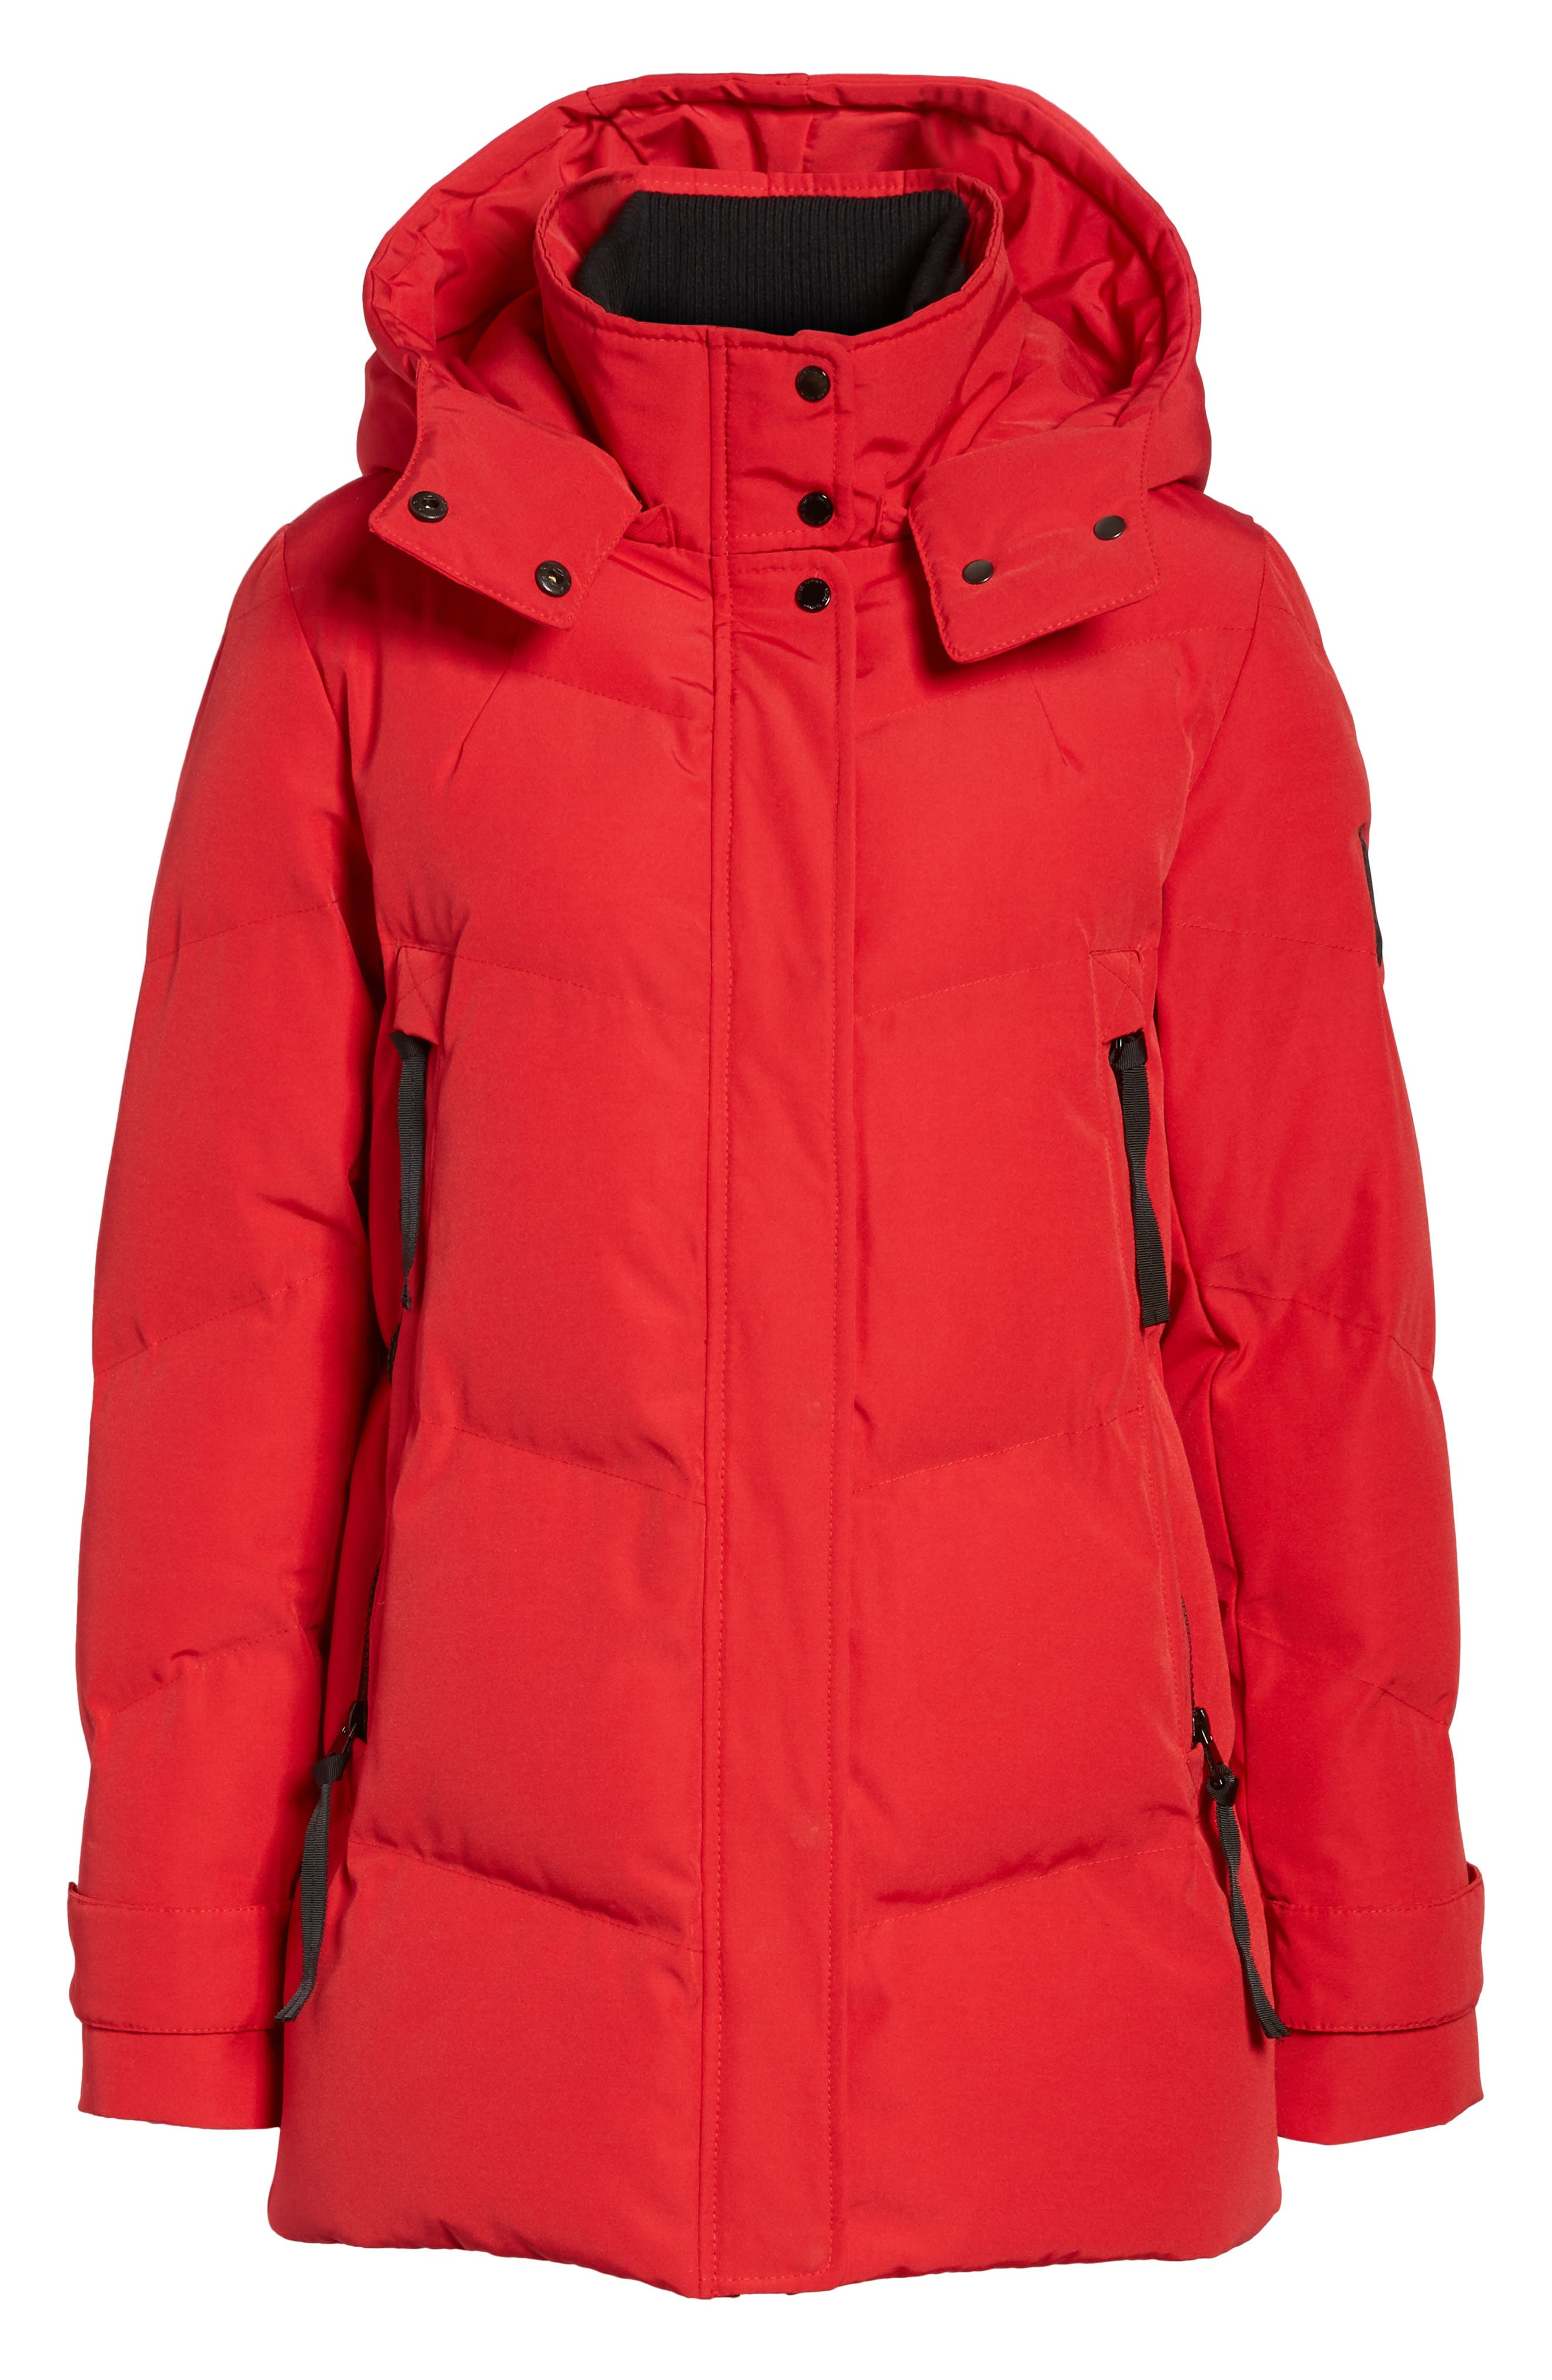 Quilted Puffer Jacket,                             Alternate thumbnail 6, color,                             Red